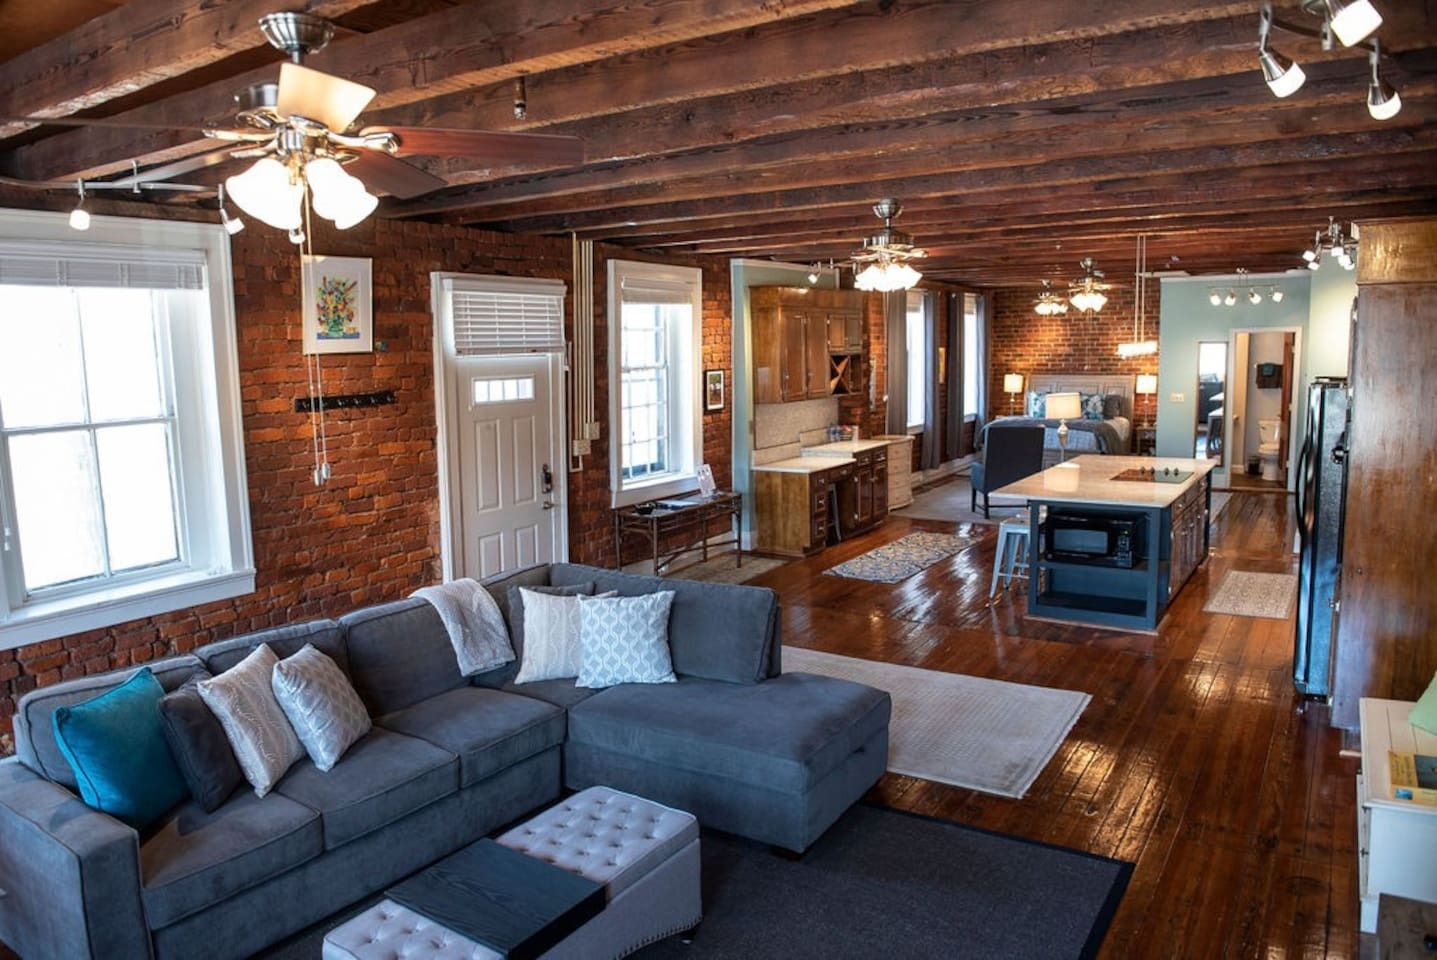 Historic and modern Cross Keys loft with open floor plan in downtown Lynchburg. Thomas Jefferson is said to have stayed here.